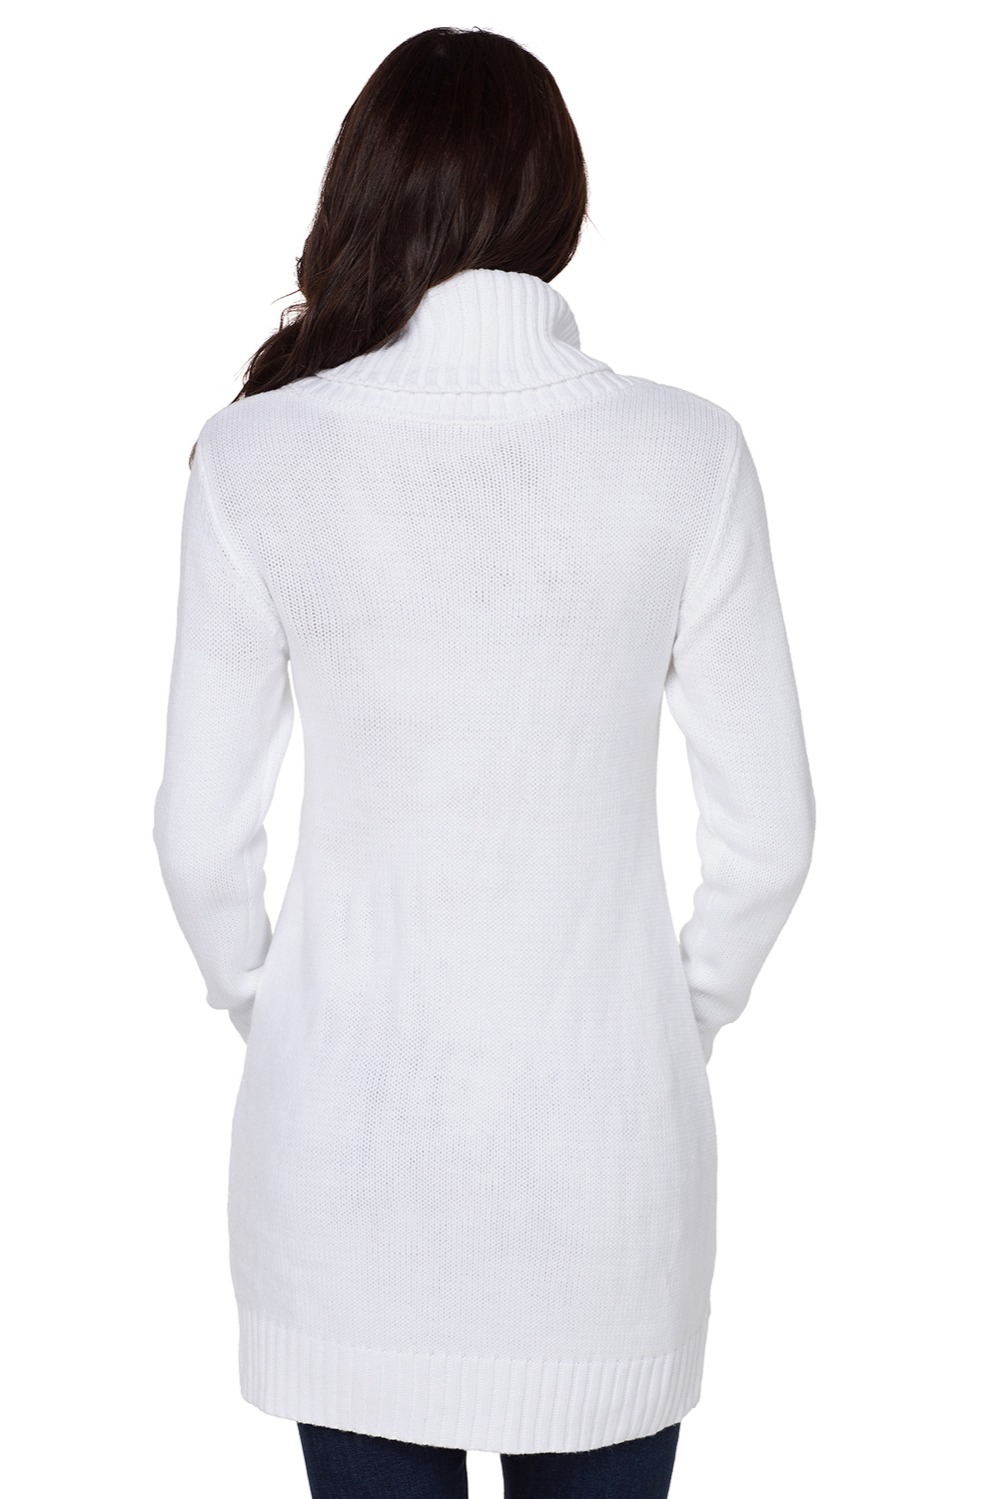 White-Cowl-Neck-Cable-Knit-Sweater-Dress-LC27836-1-2